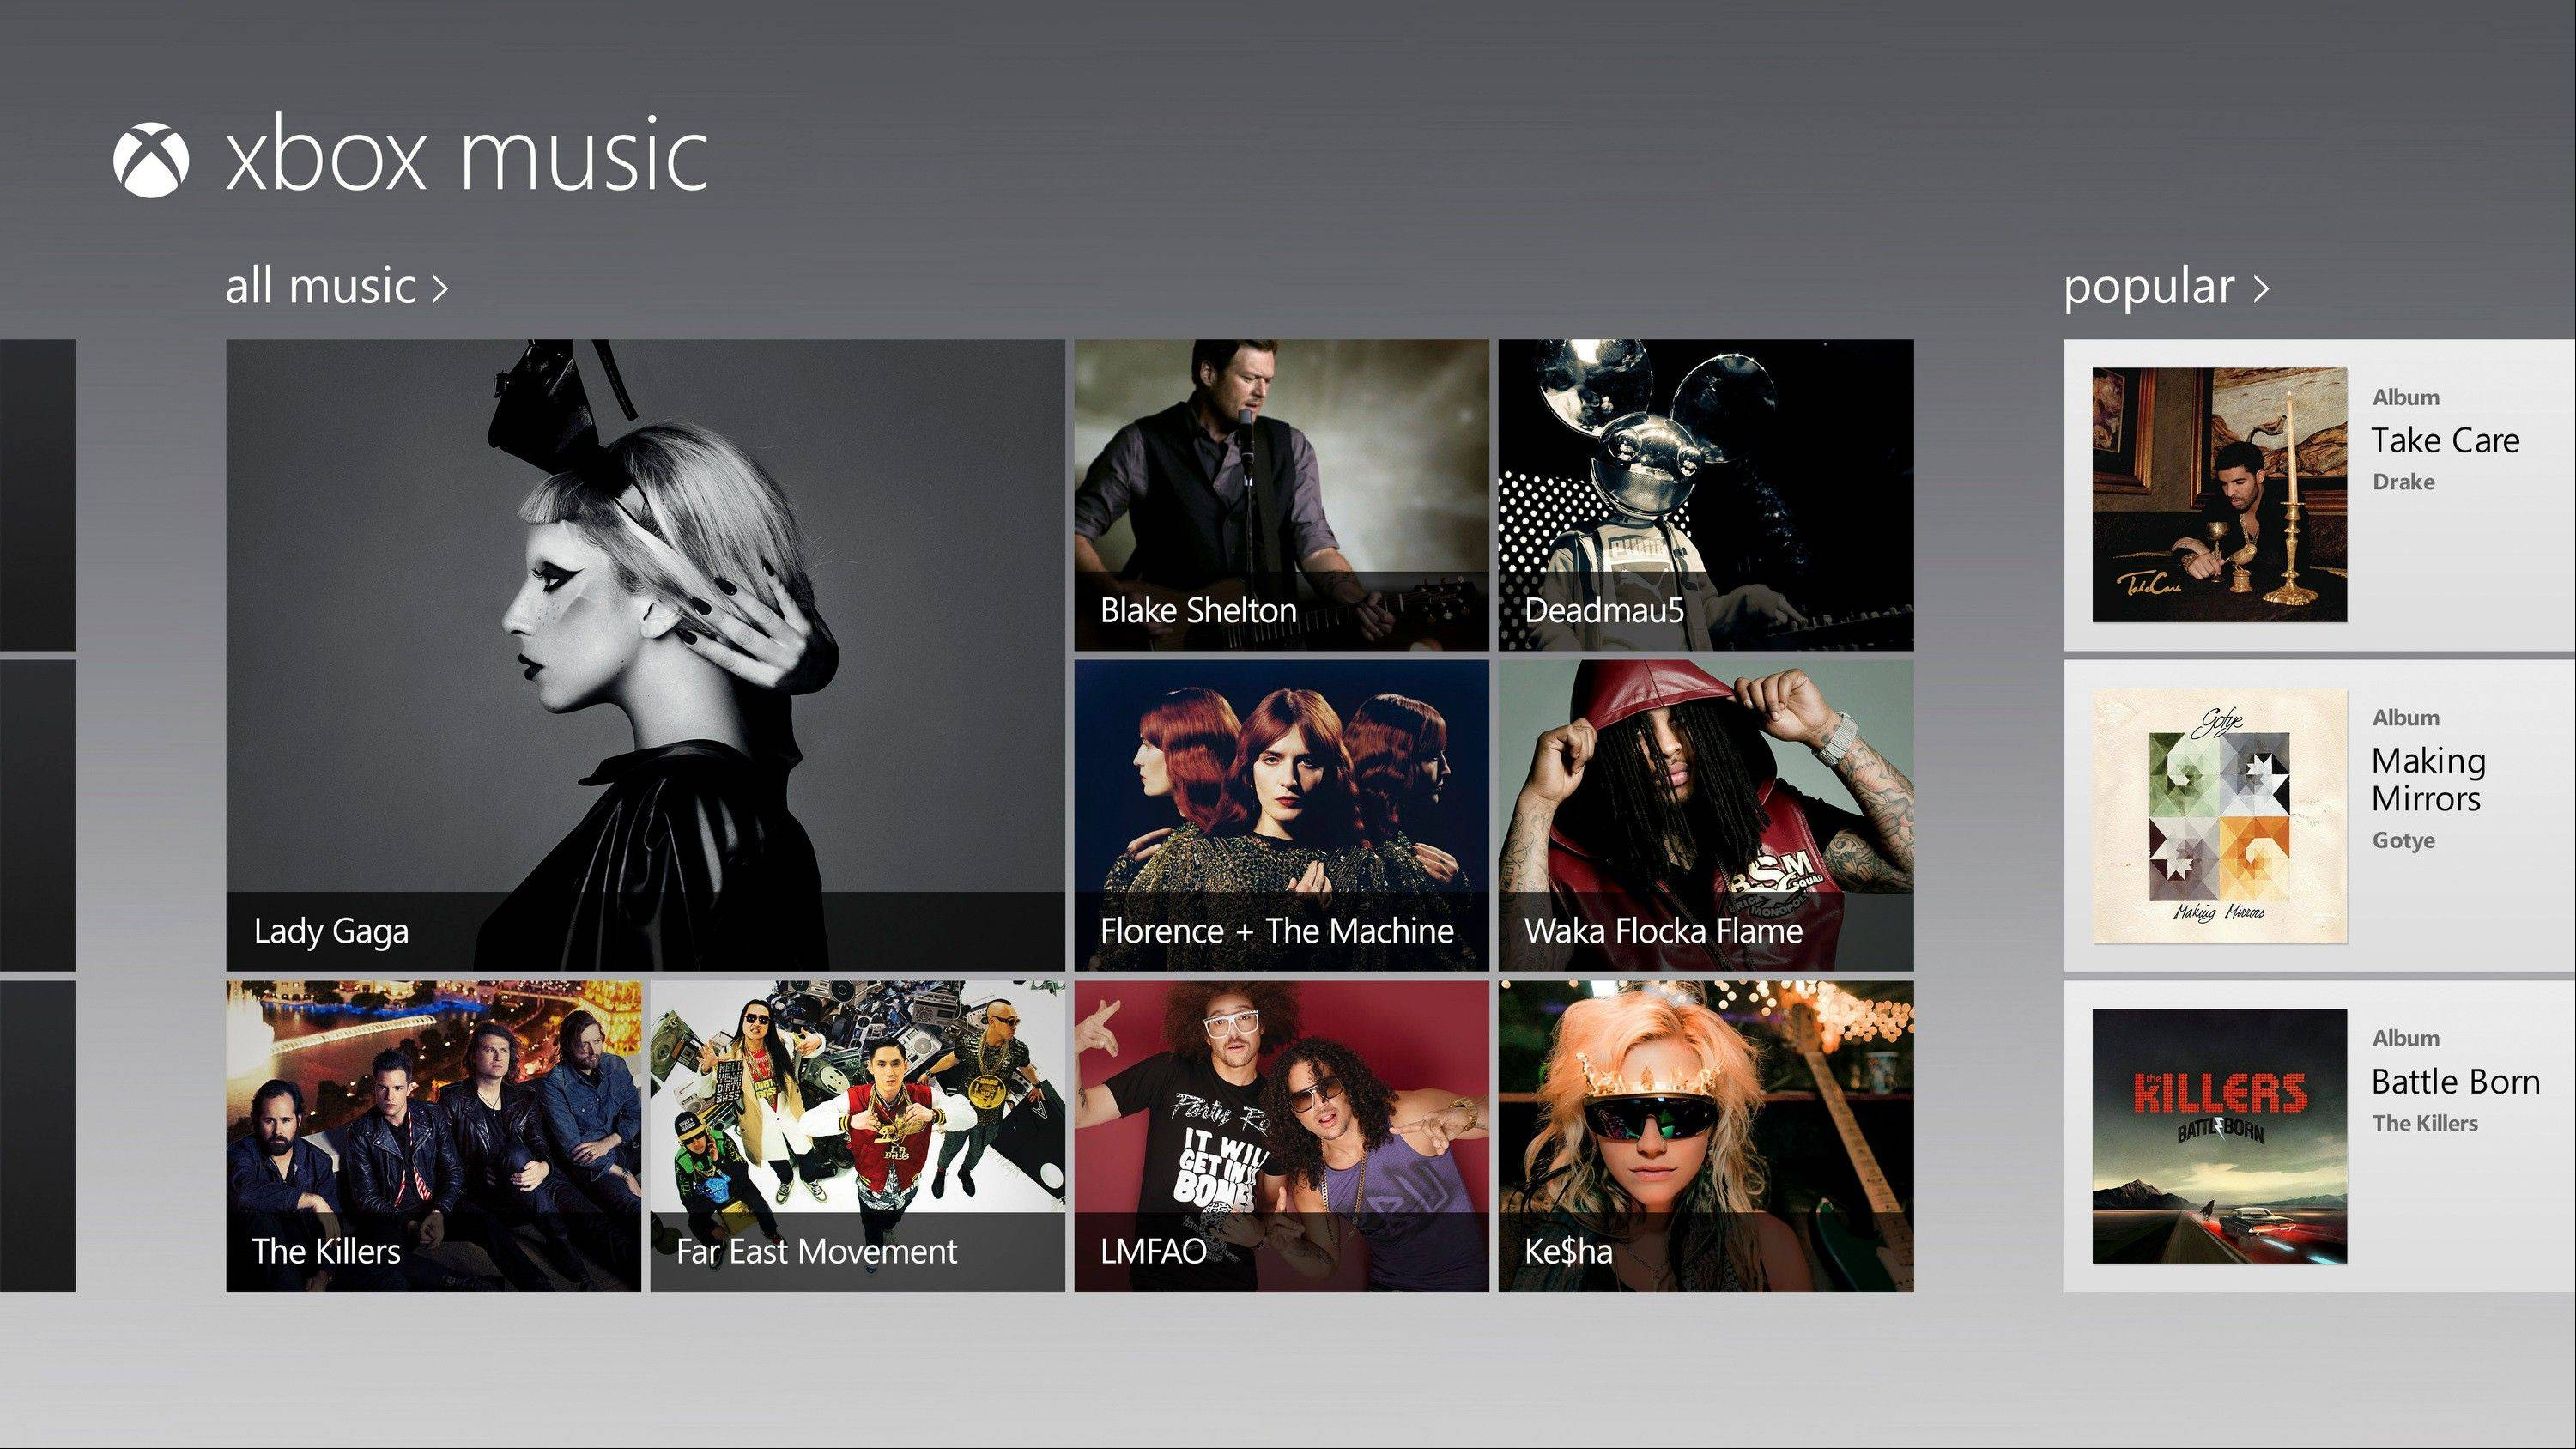 Microsoft is making its Xbox Music streaming service available for free on the Web _ even to those who don't use Windows 8. The expansion beyond Windows 8 devices and Xbox game consoles starting Monday is intended to bring new customers into the software giant's ecosystem of devices and services.